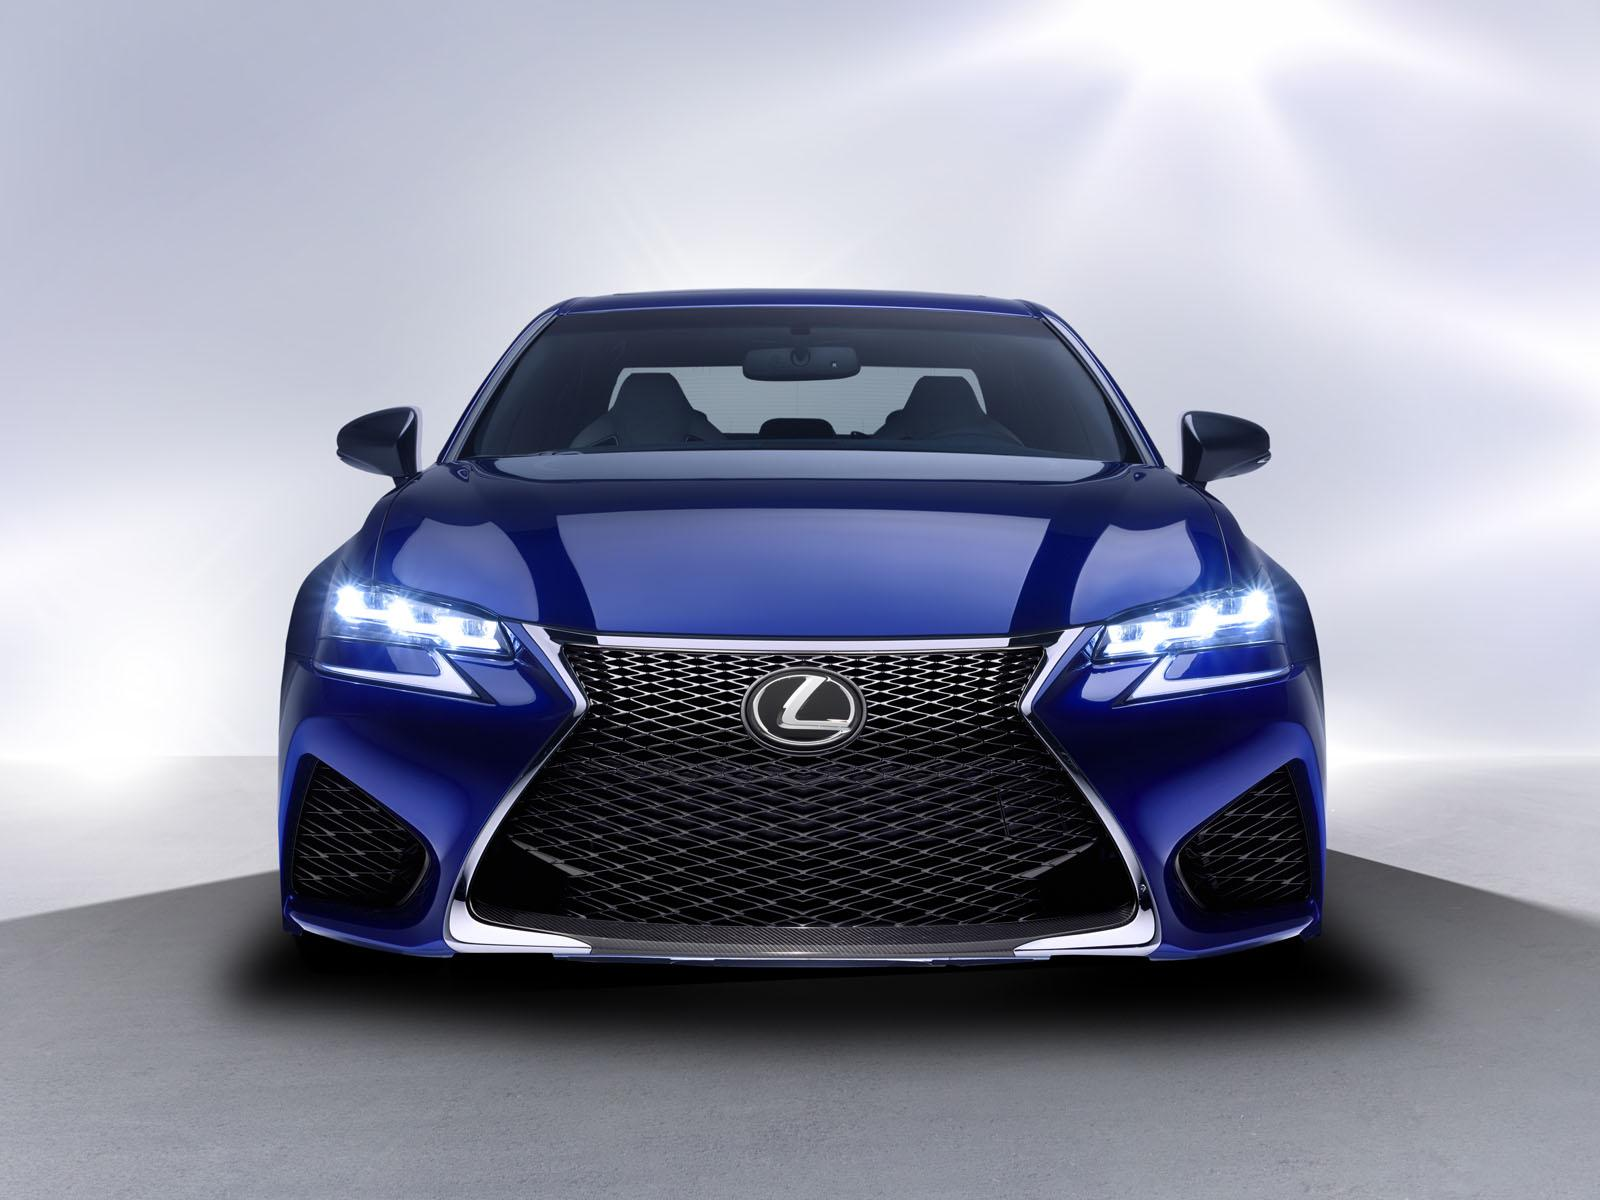 Lexus GS F is car pornography from Japan, but it is no match for the German super saloons